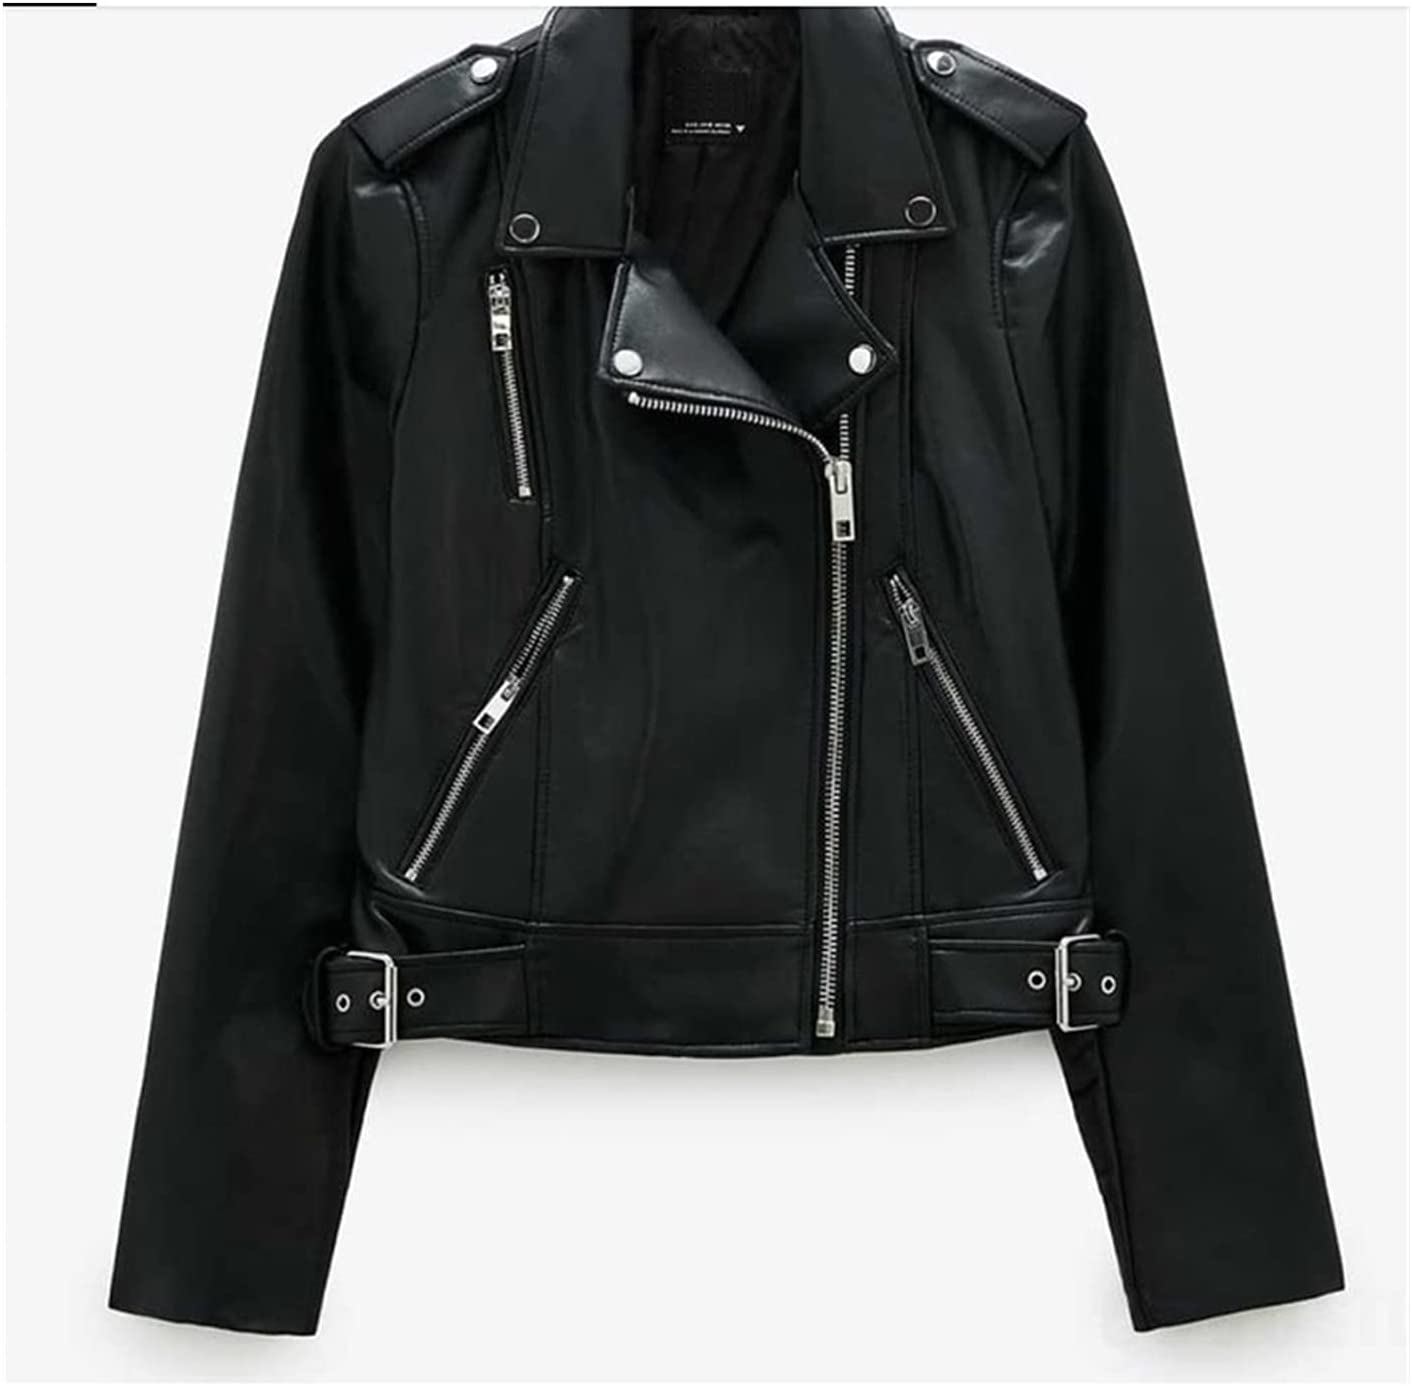 Jacket Women Black Max 60% OFF Faux Leather Mo Turn-Down Coat Zipper Price reduction Jackets